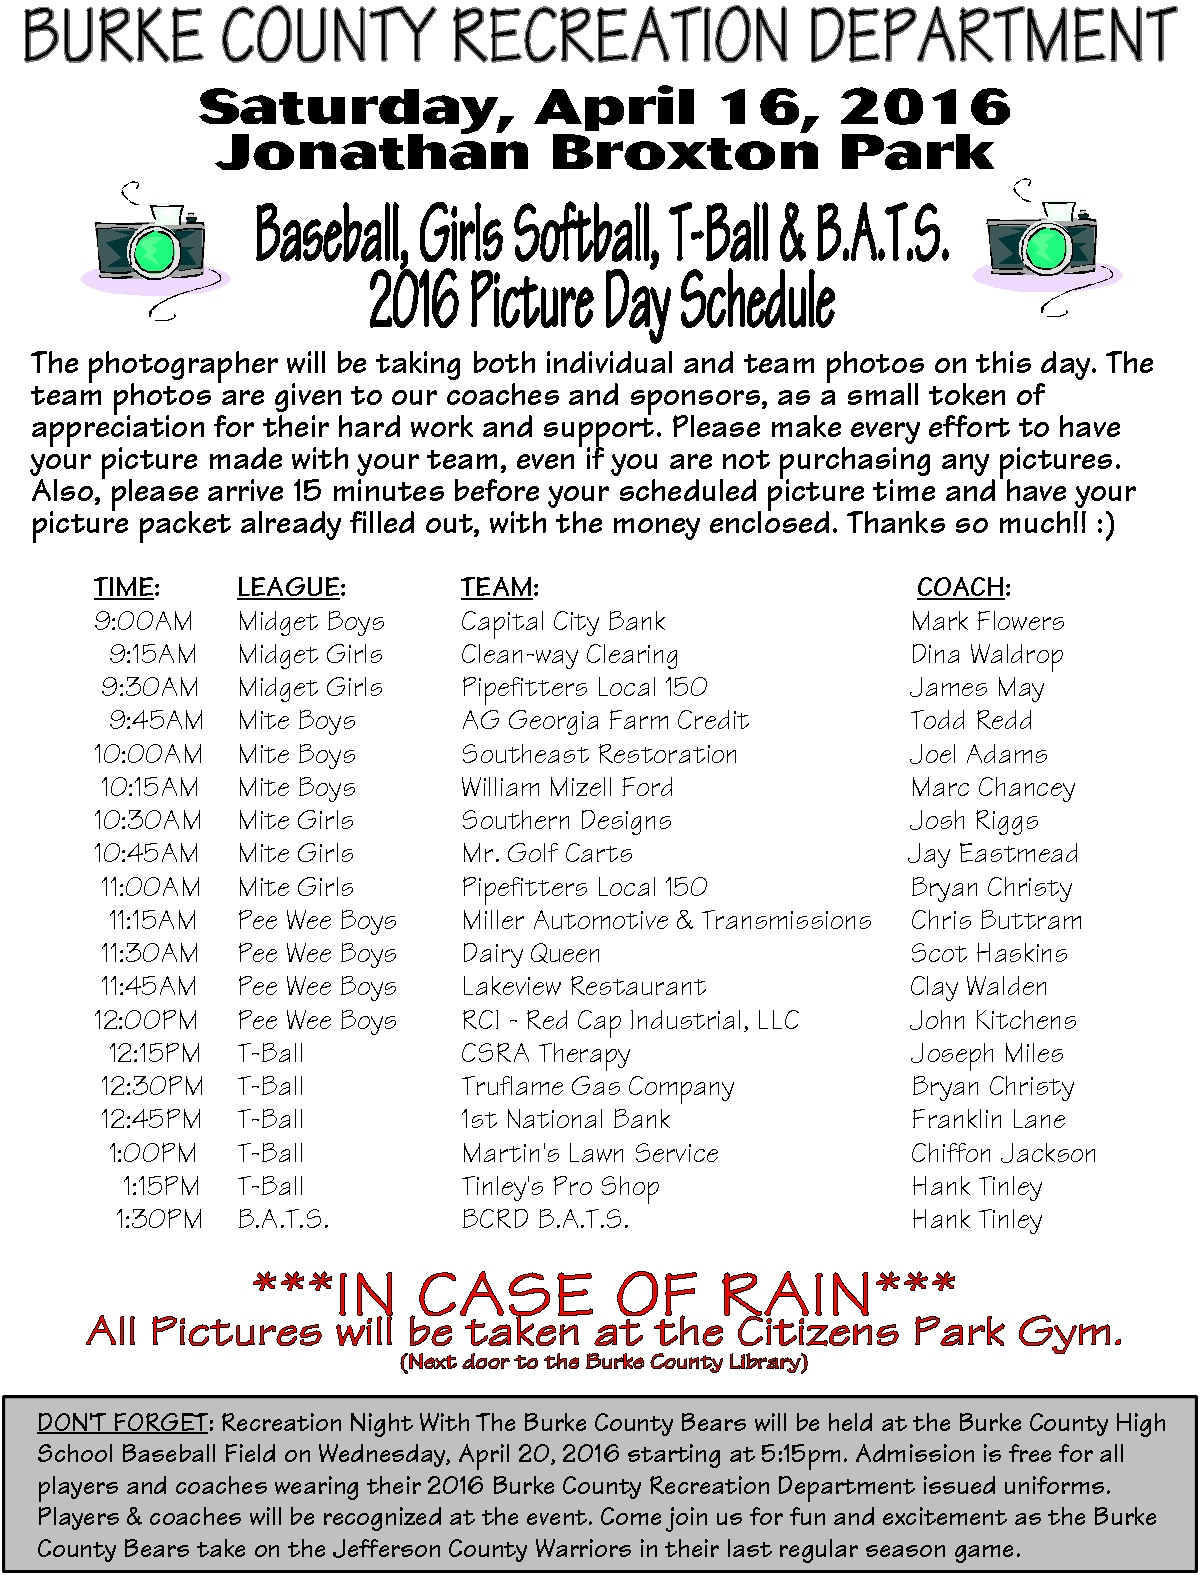 2016 Picture Schedule for Burke County Recreation Department